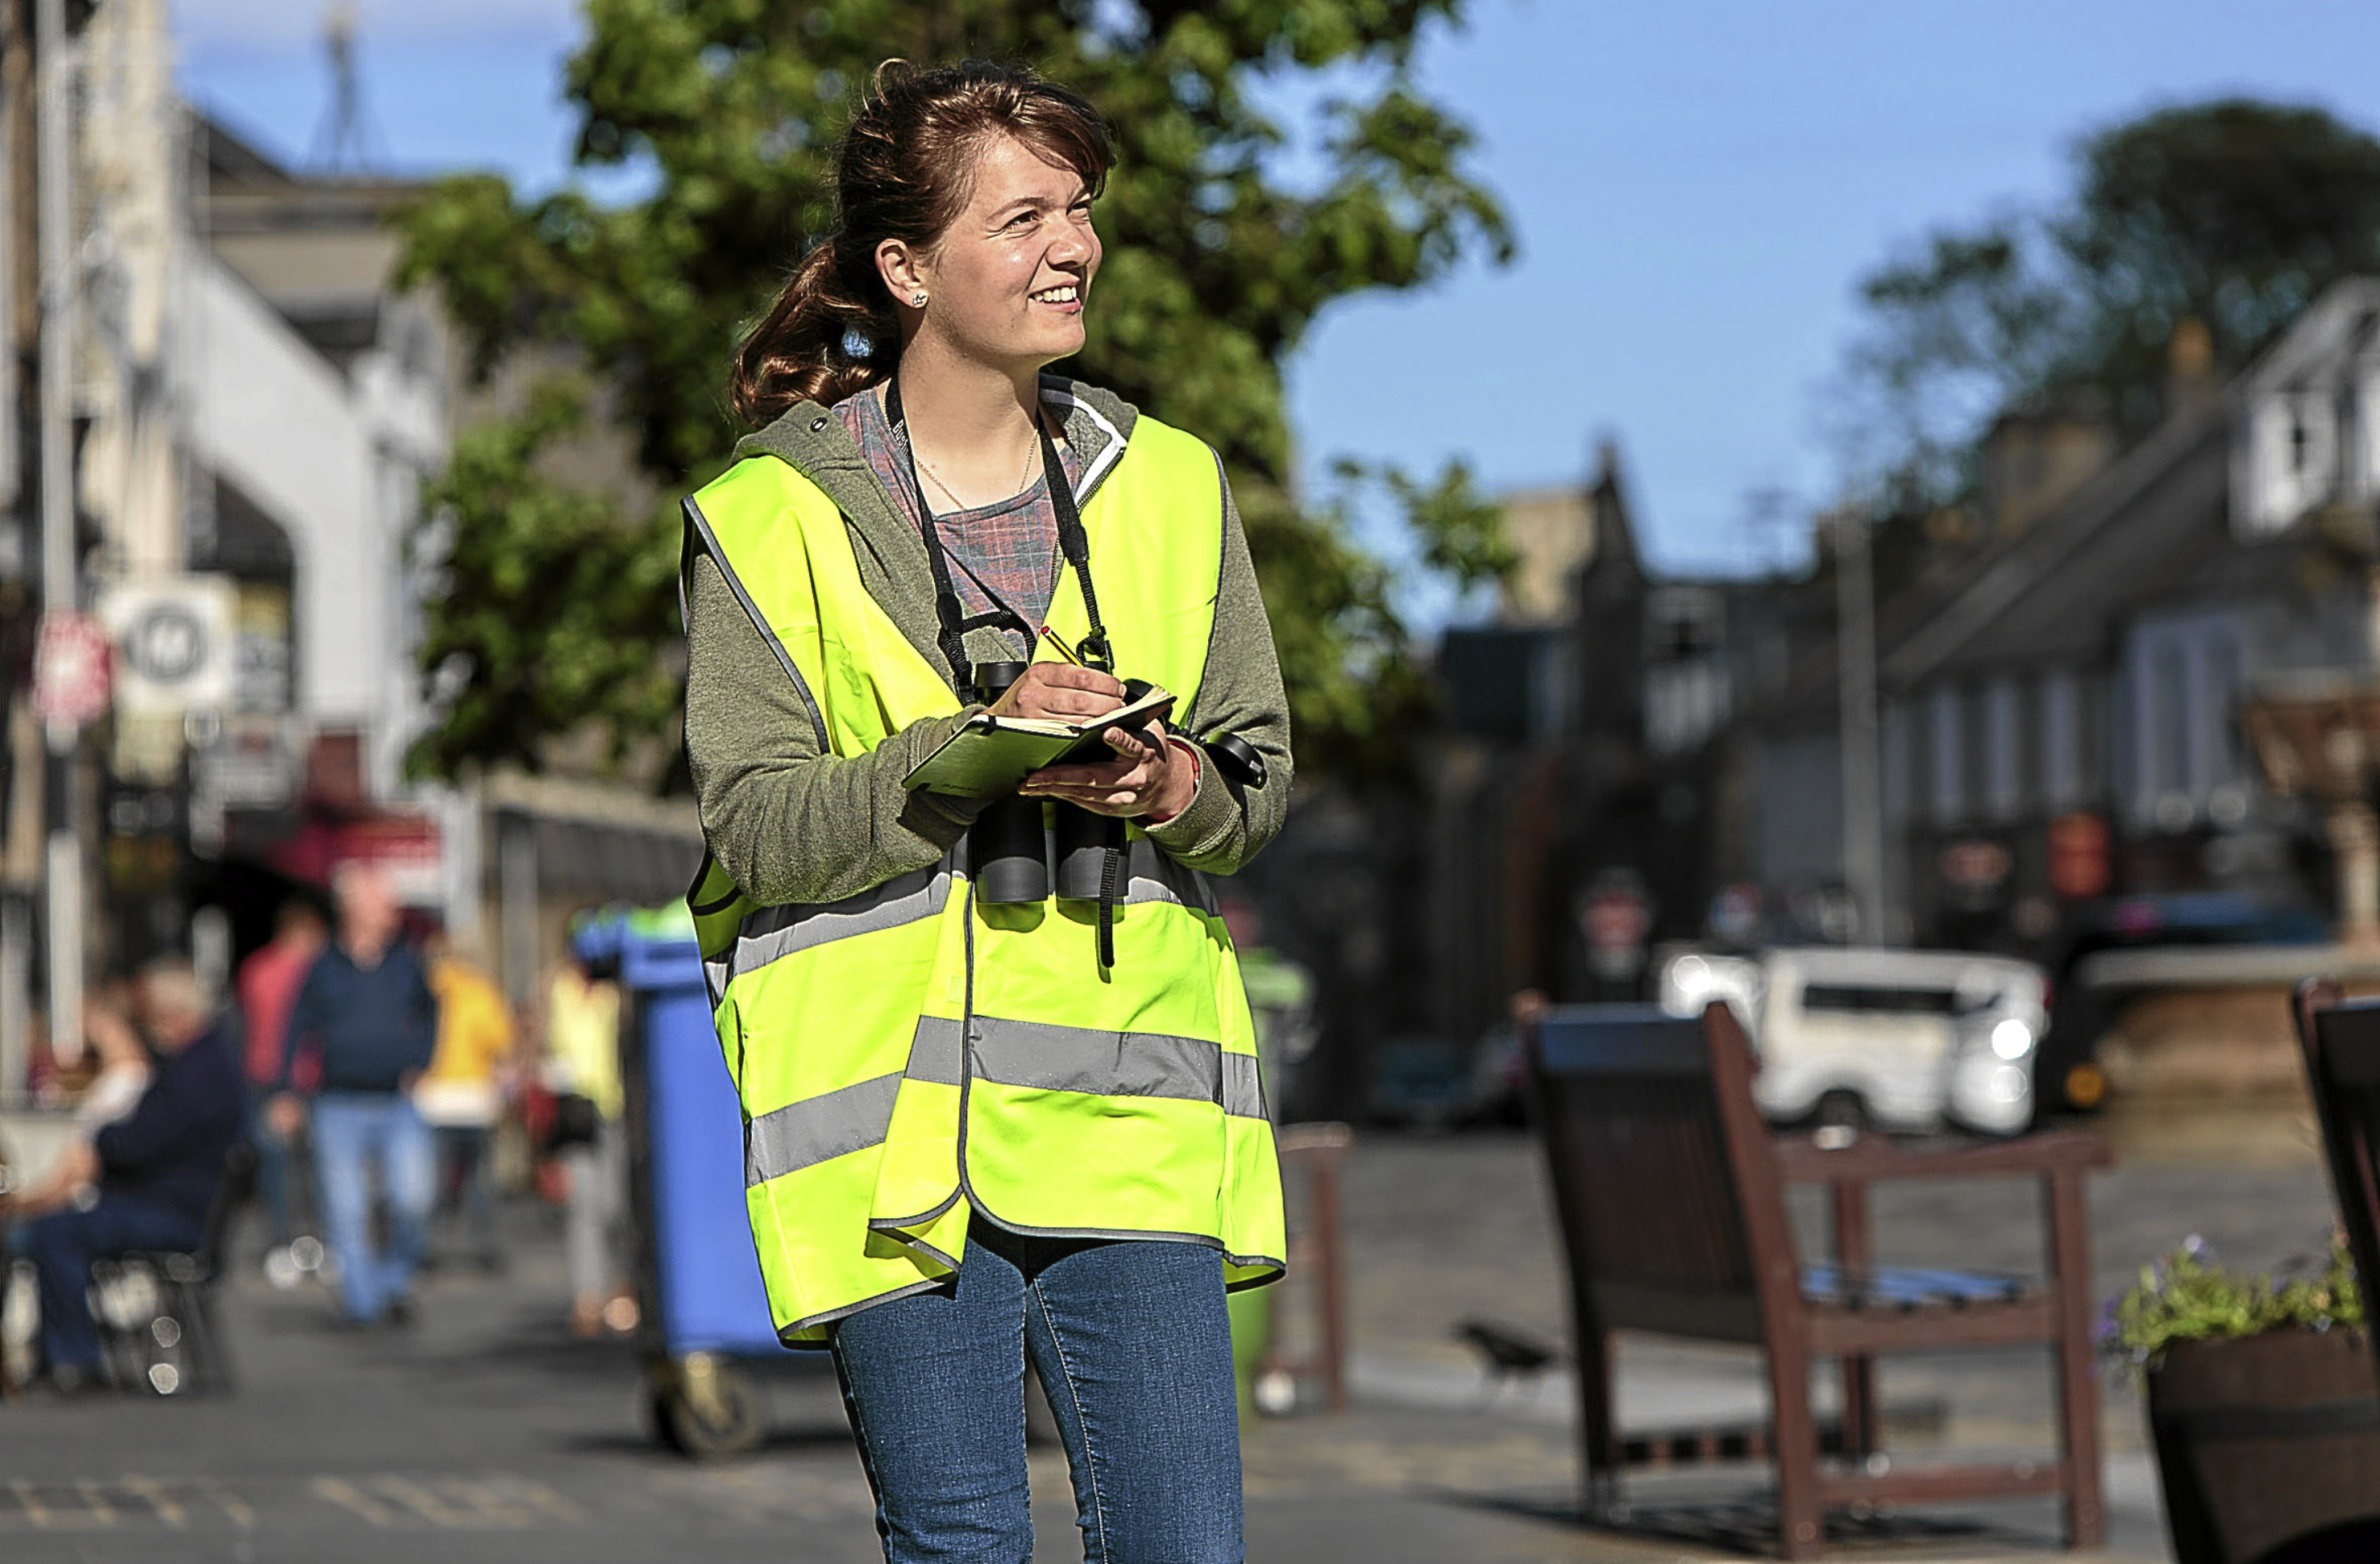 Grania Smith surveying on Market Street in St Andrews.